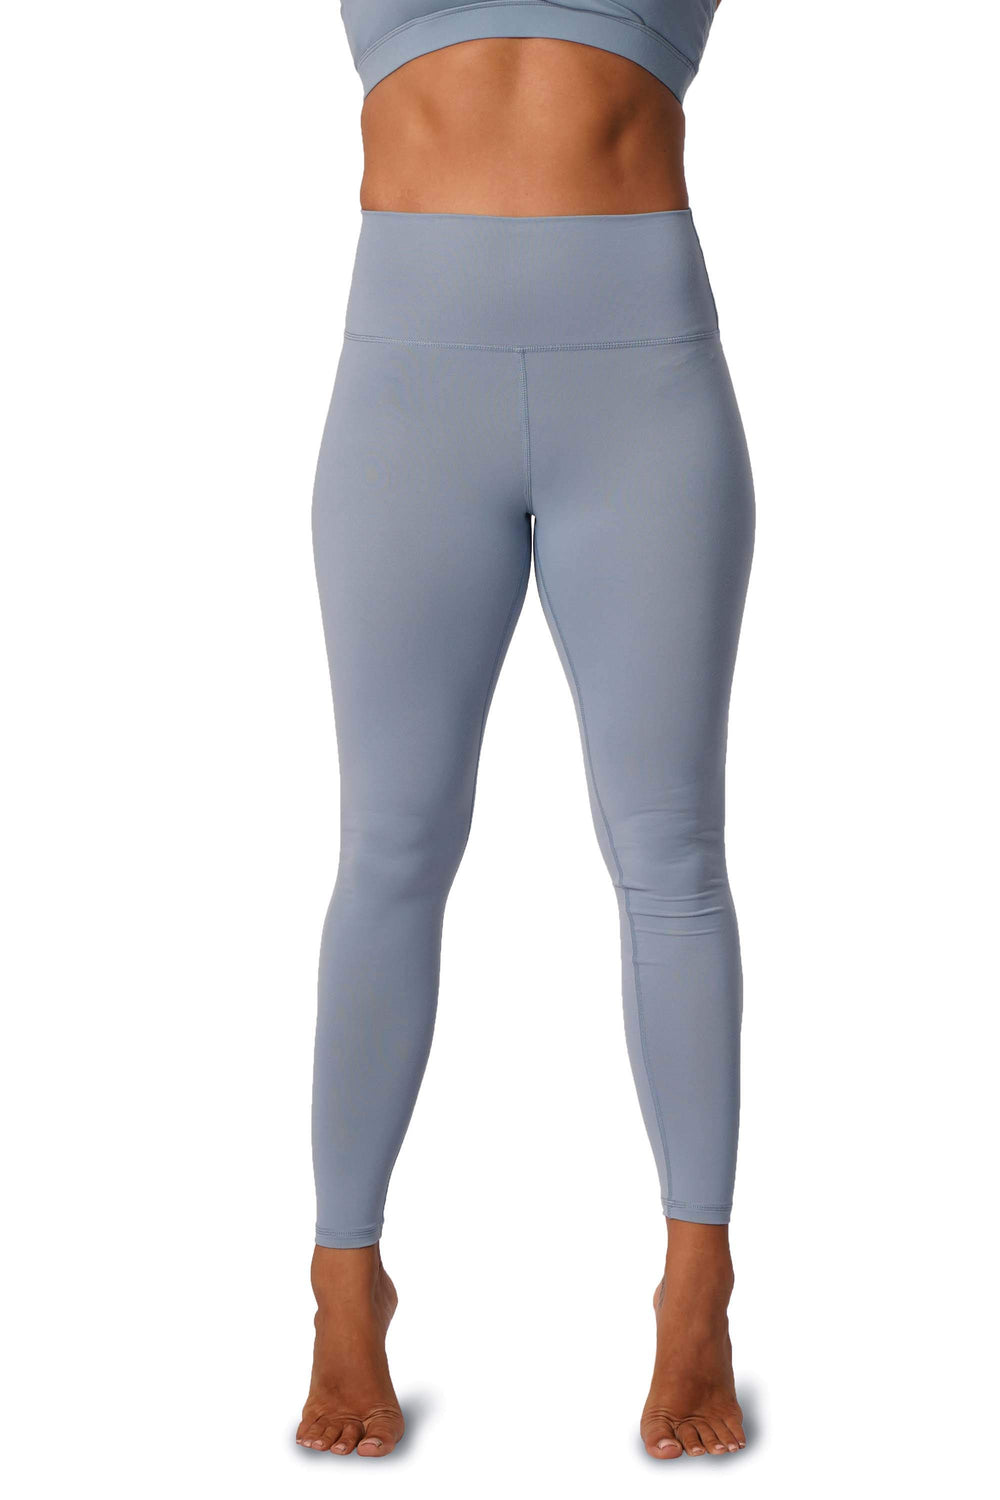 OFF THE POLE Scrunch Butt Leggings - Sky Blue